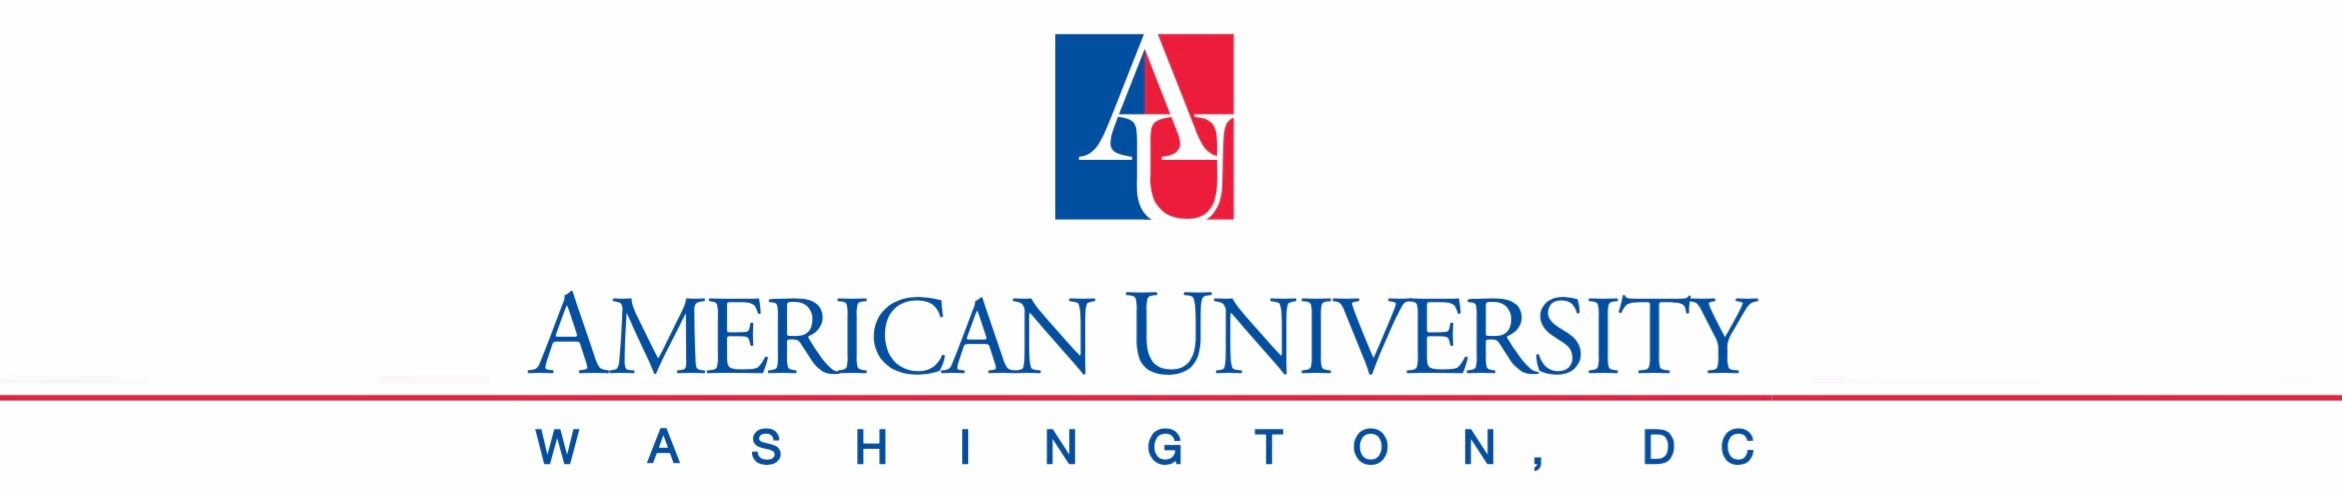 American University 2018 Piano and Orchestral String Sale ...